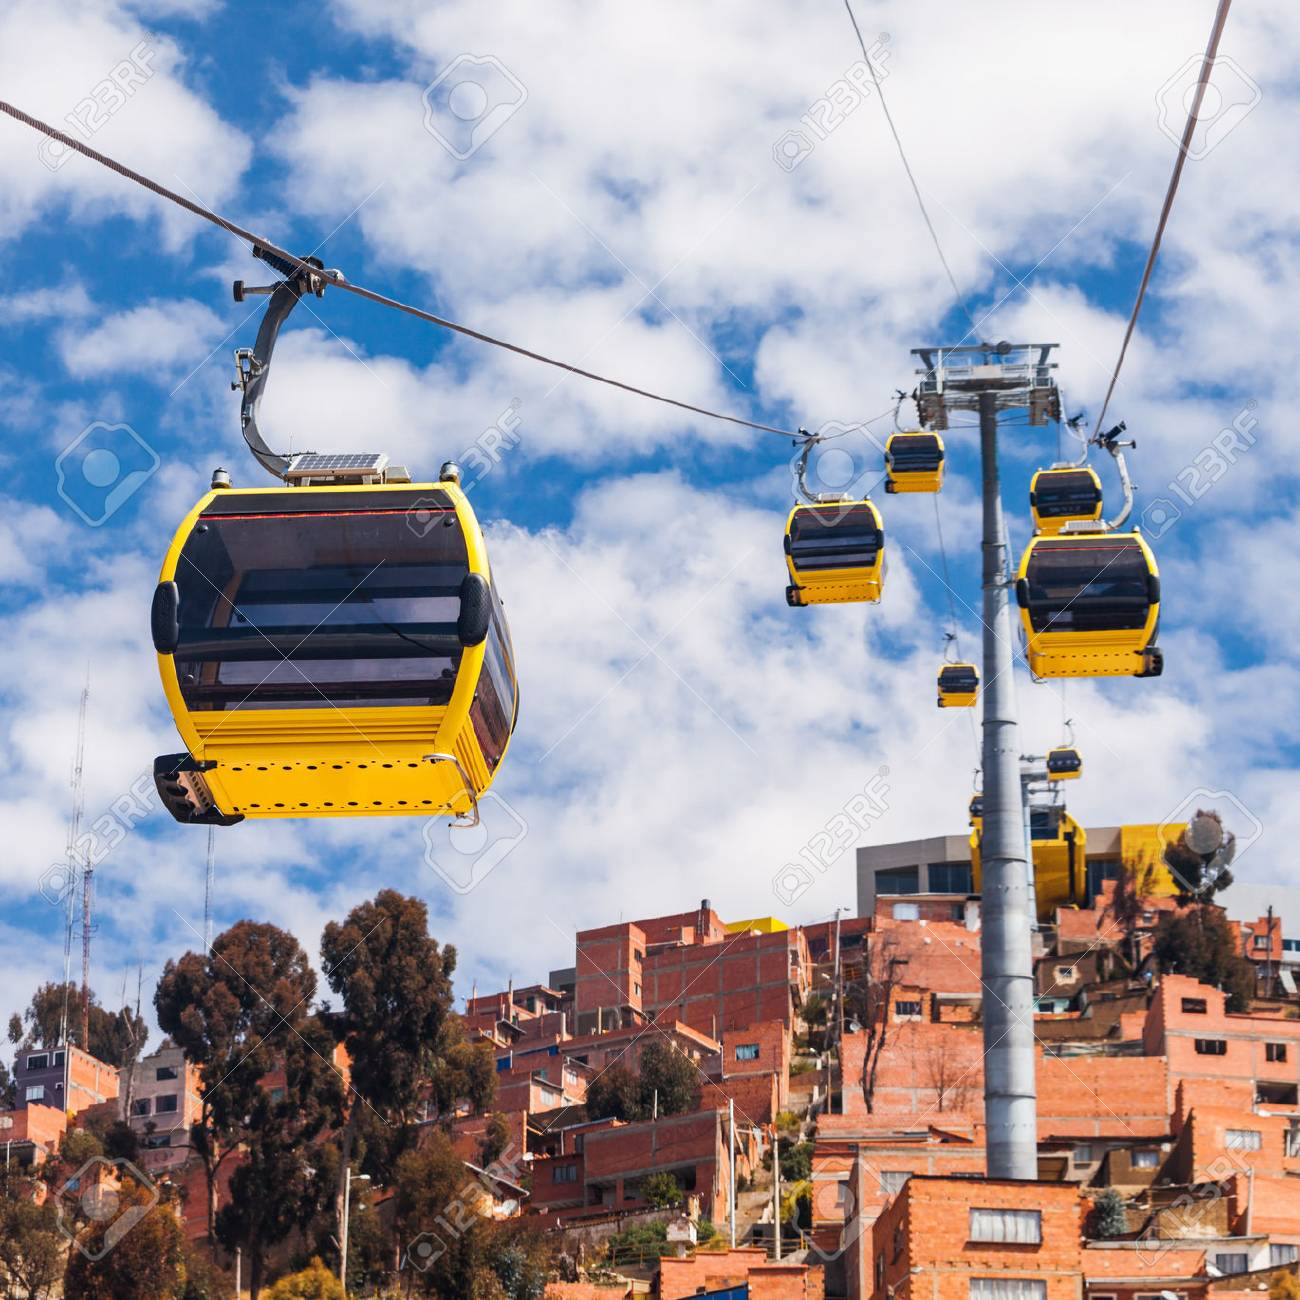 Mi Teleferico is an aerial cable car urban transit system in the city of La Paz, Bolivia. - 92625867